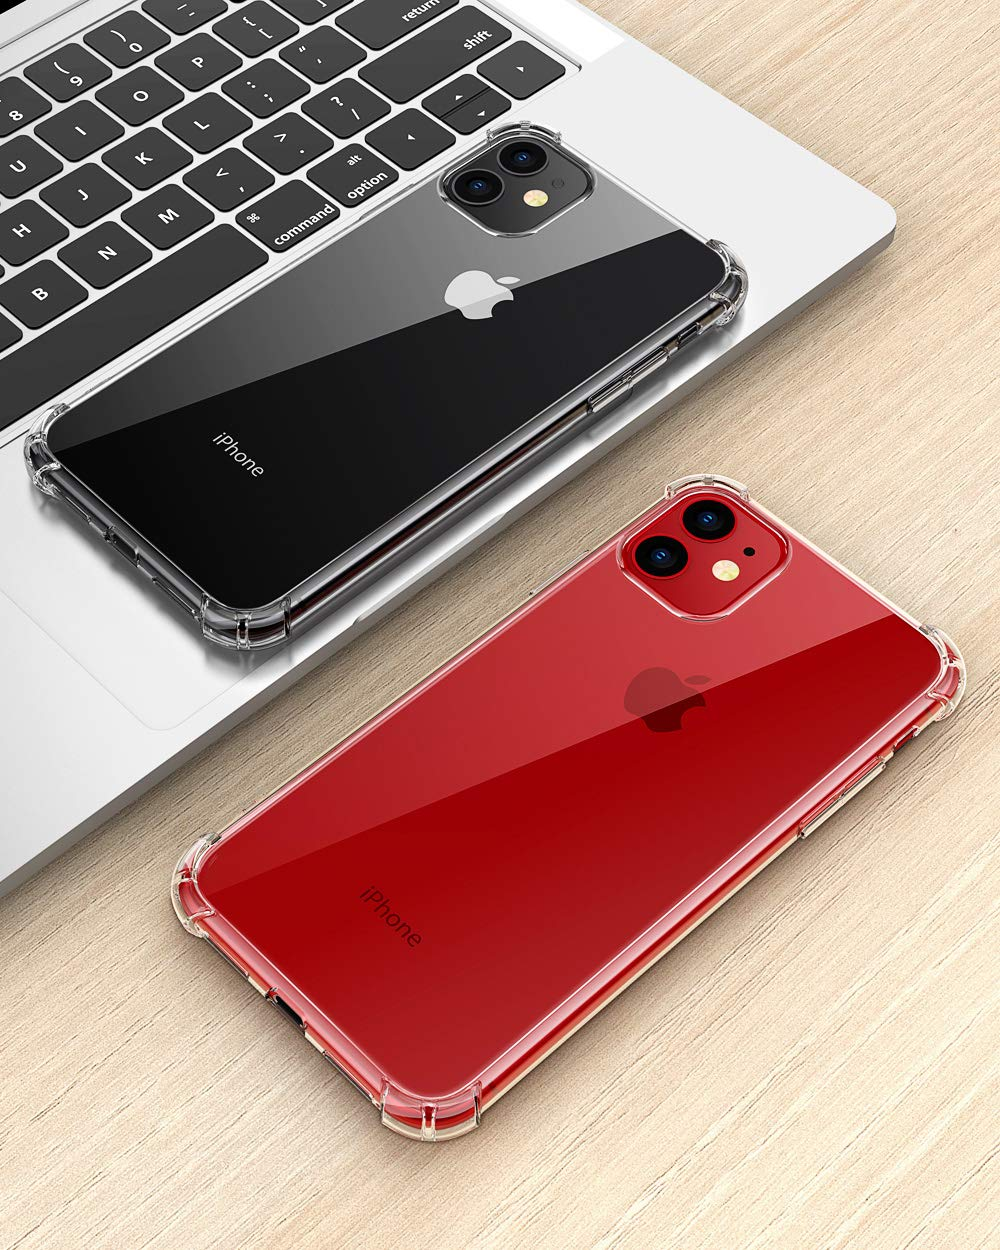 Coque iphone 11 translucide souple résistant - protection anti-choc